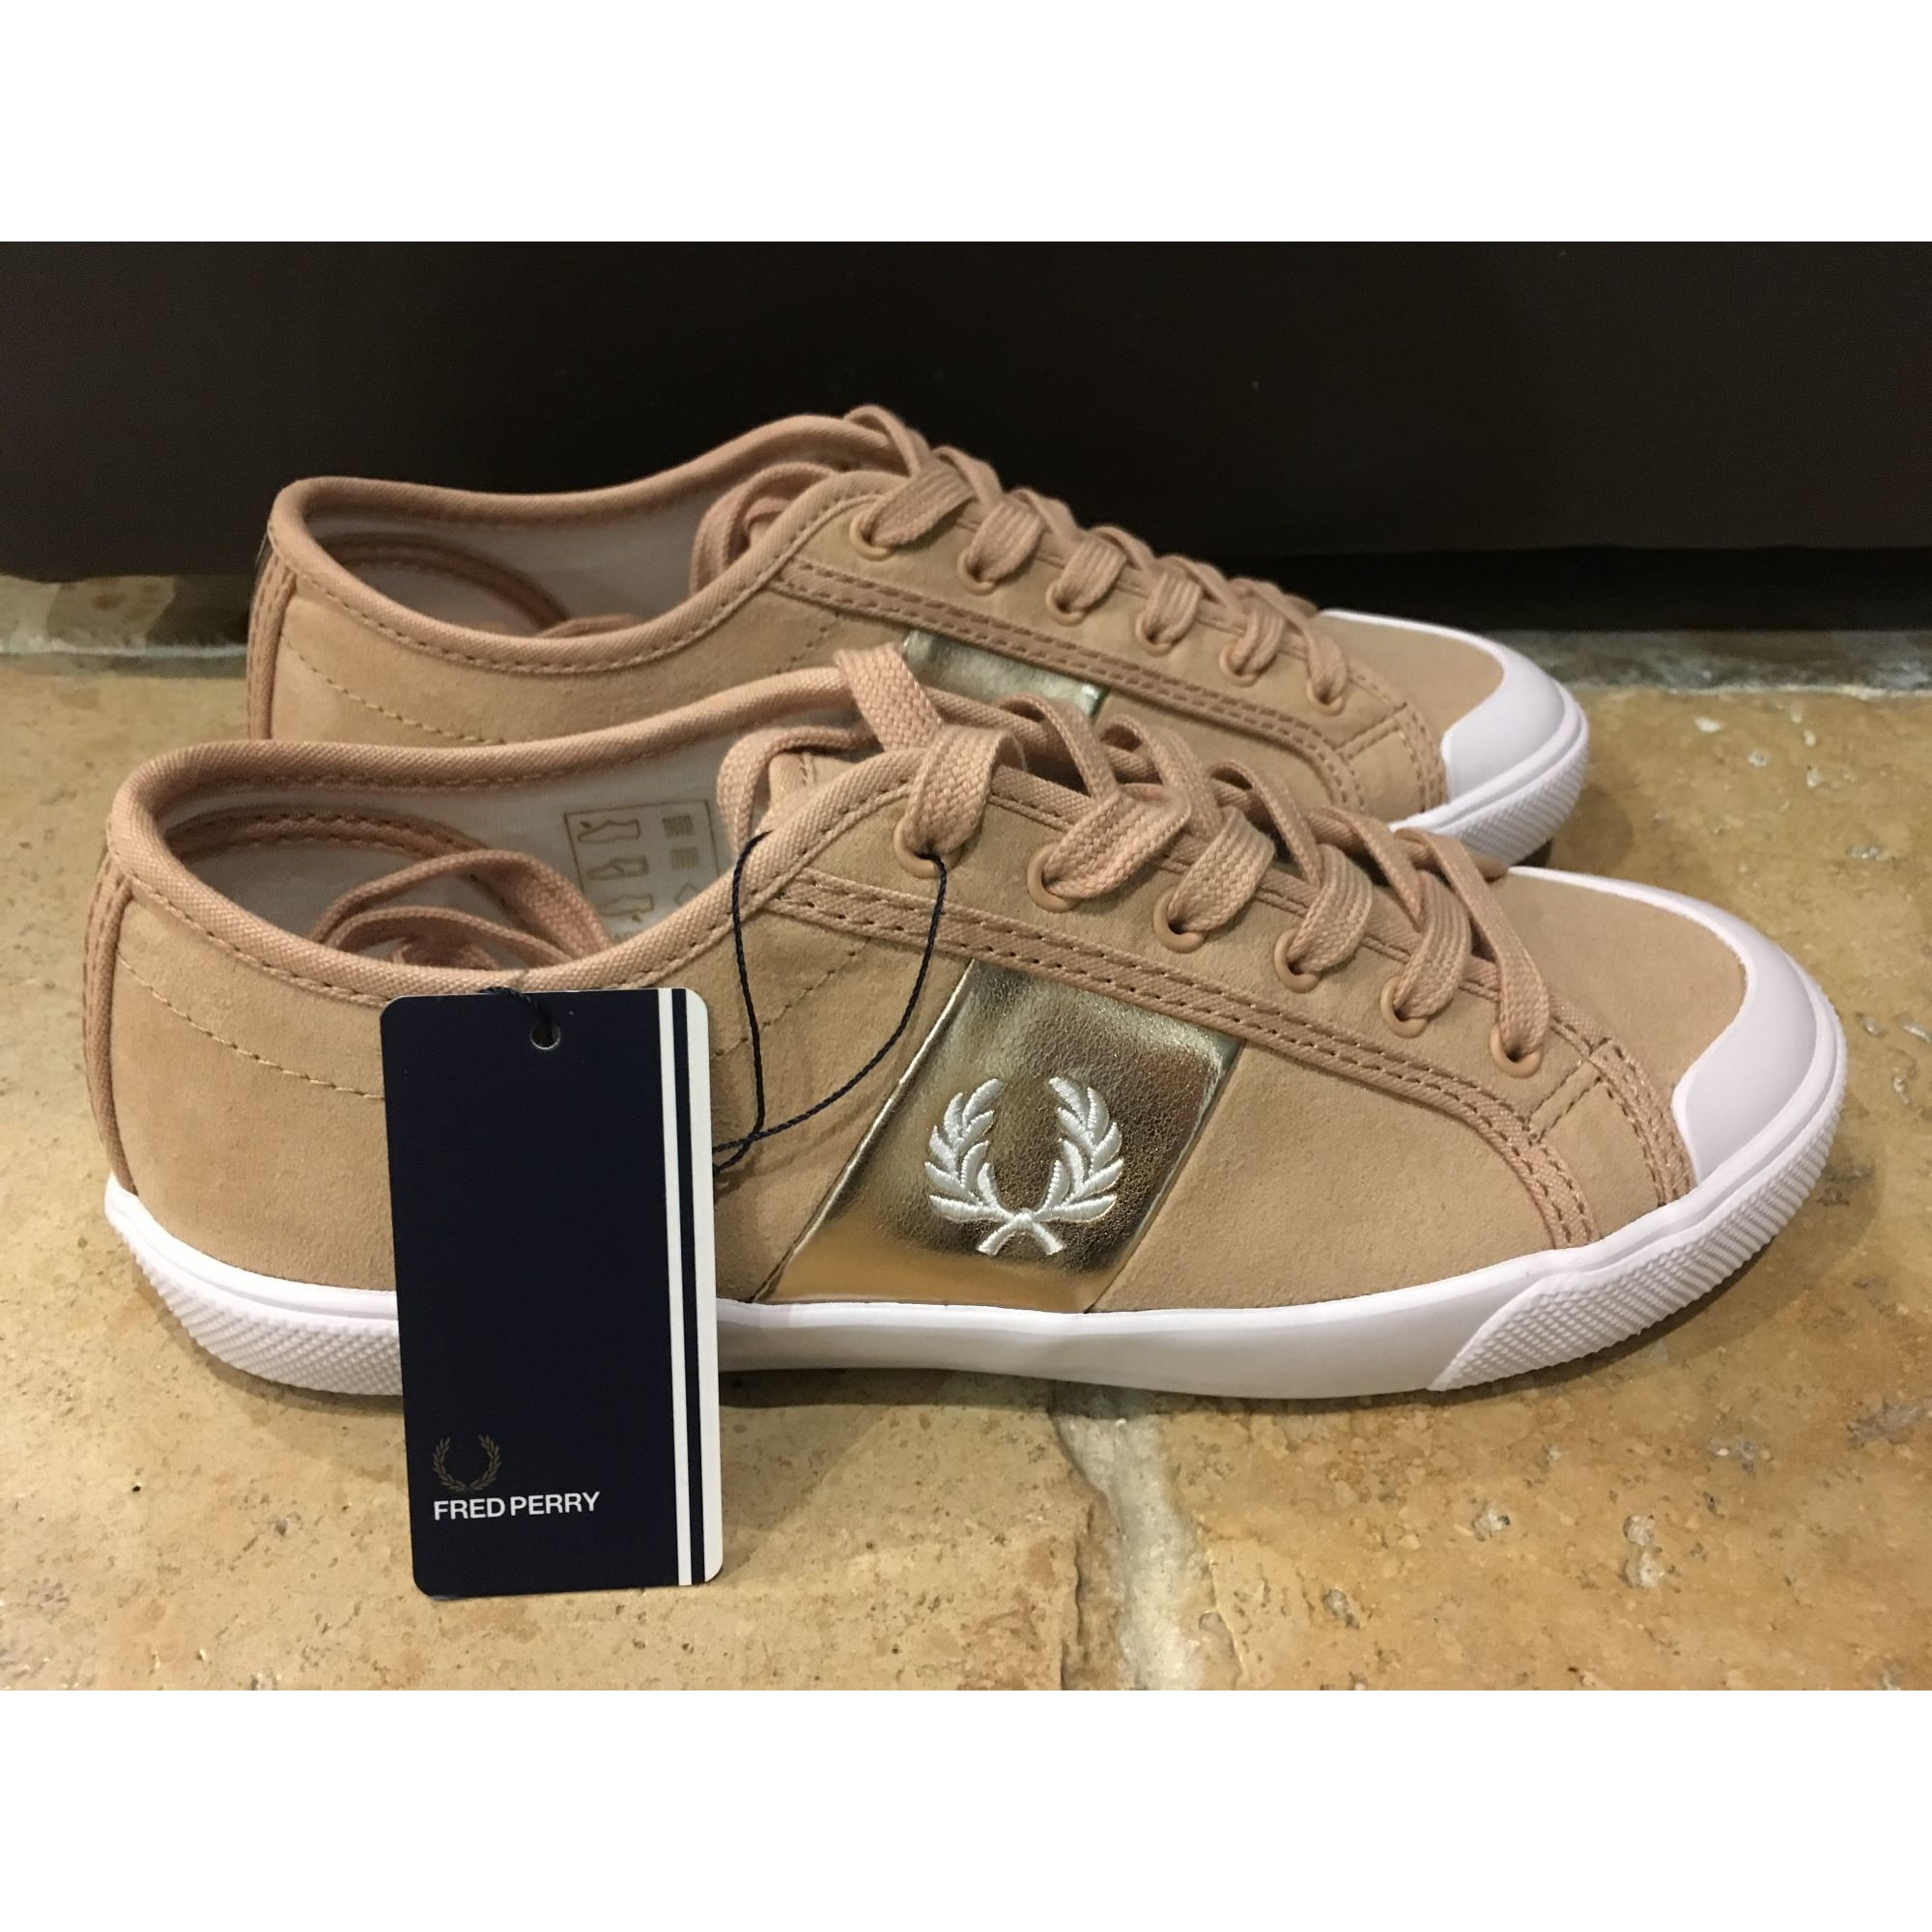 Chaussures de sport FRED PERRY saumon clair